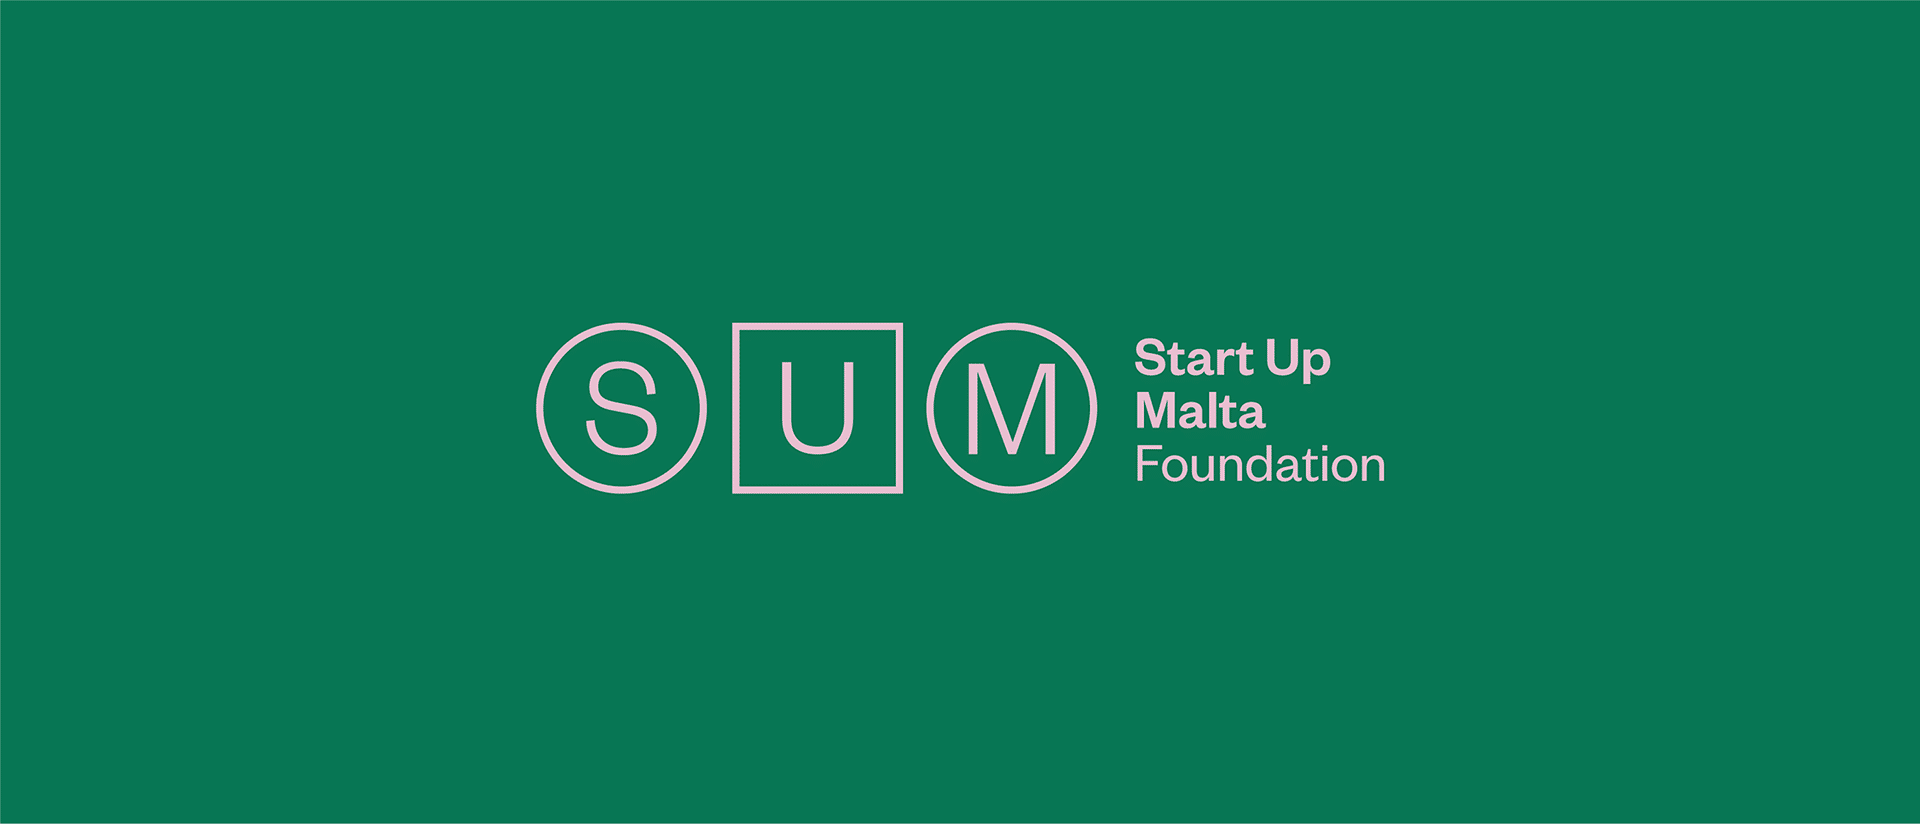 START UP MALTA FOUNDATION